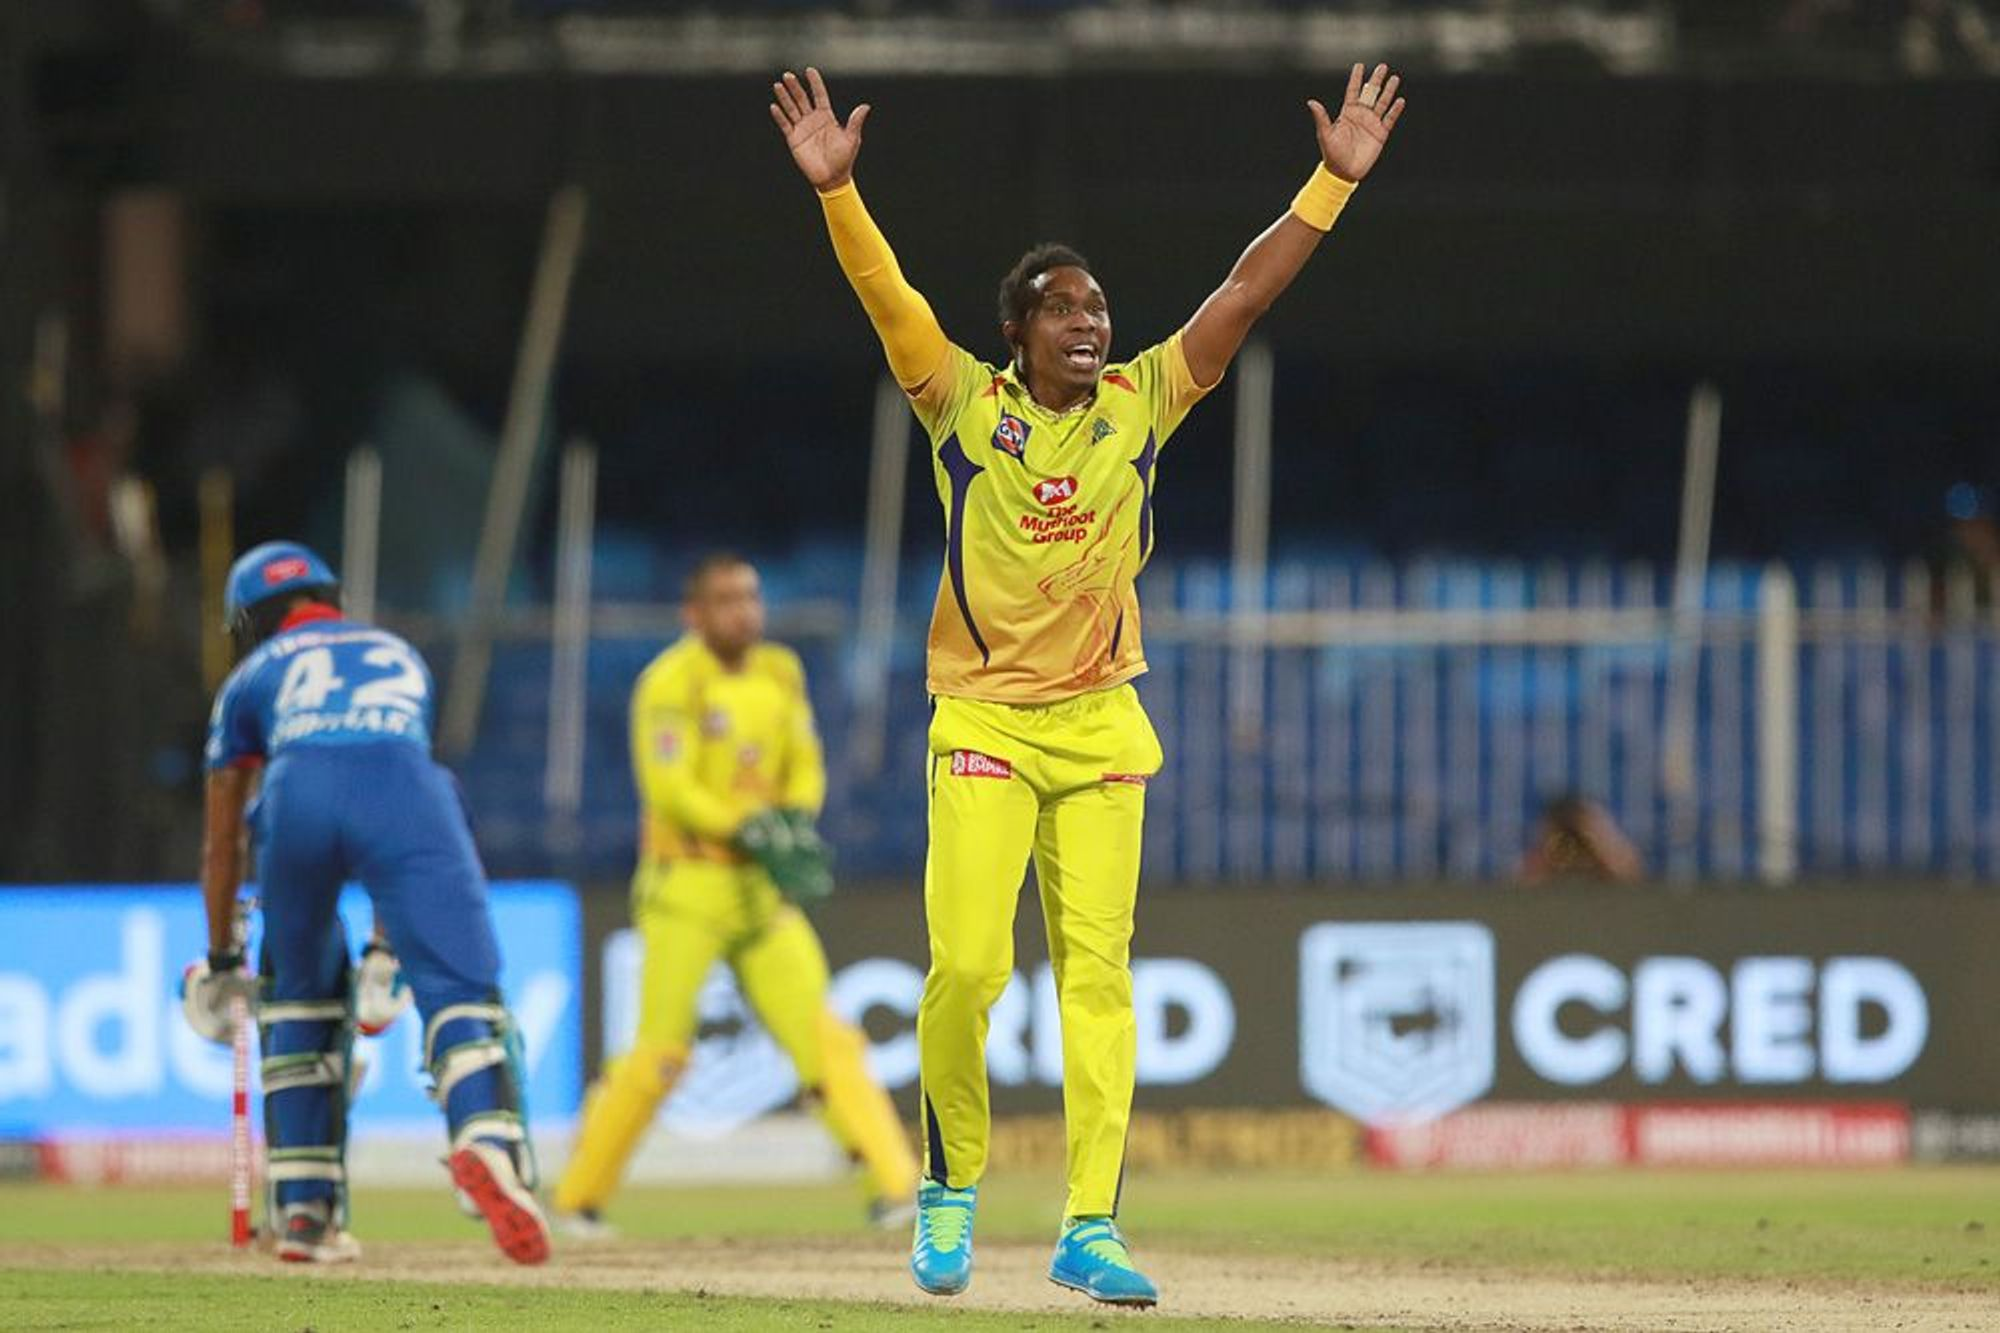 Dwayne Bravo injury add up to CSK woes as they concede 6thdefeat of the season